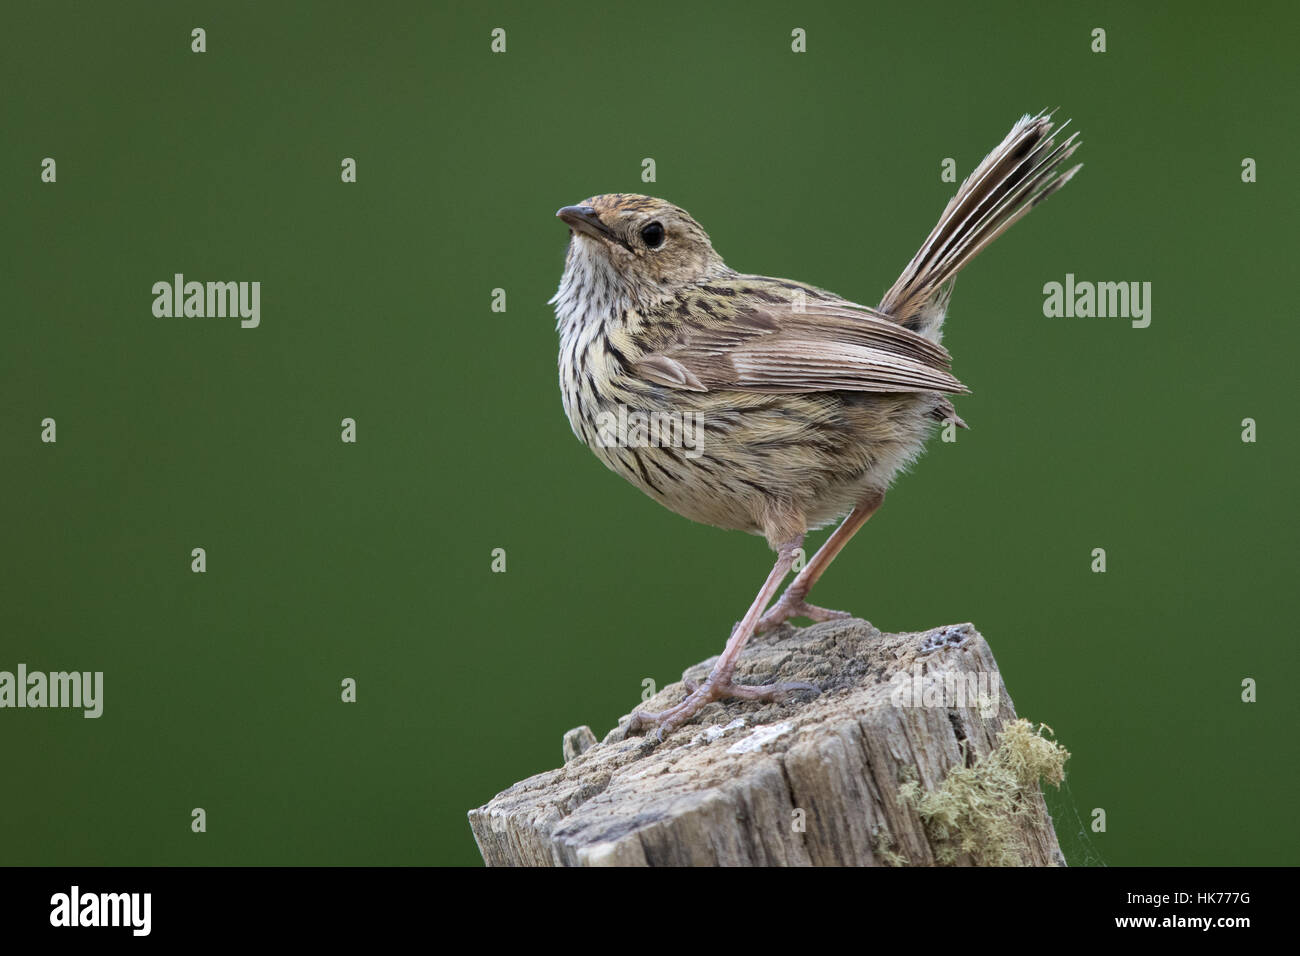 Striated Fieldwren (Calamanthus fuliginosus) perched on the top of a fencepost - Stock Image